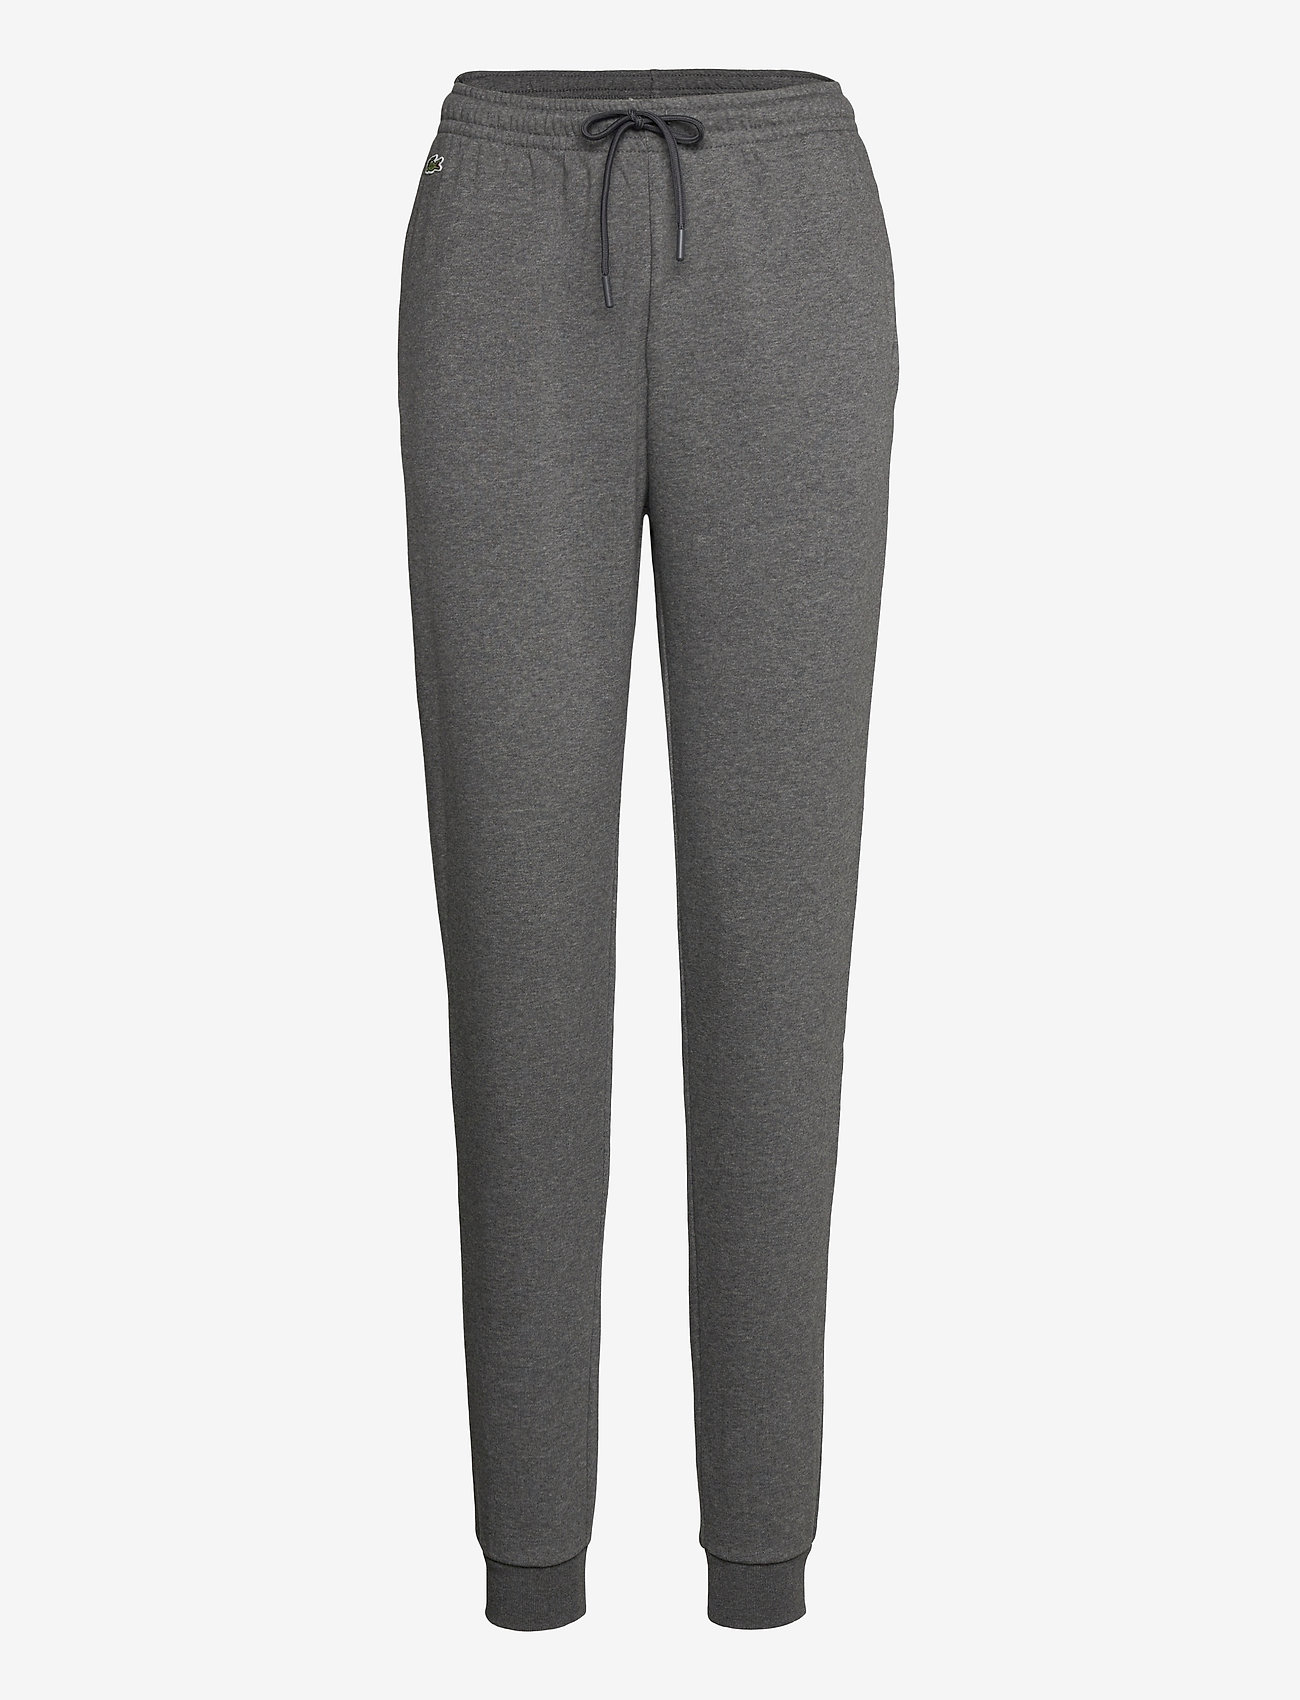 Lacoste - Women tracksuit trousers - sportbroeken - pitch chine - 0